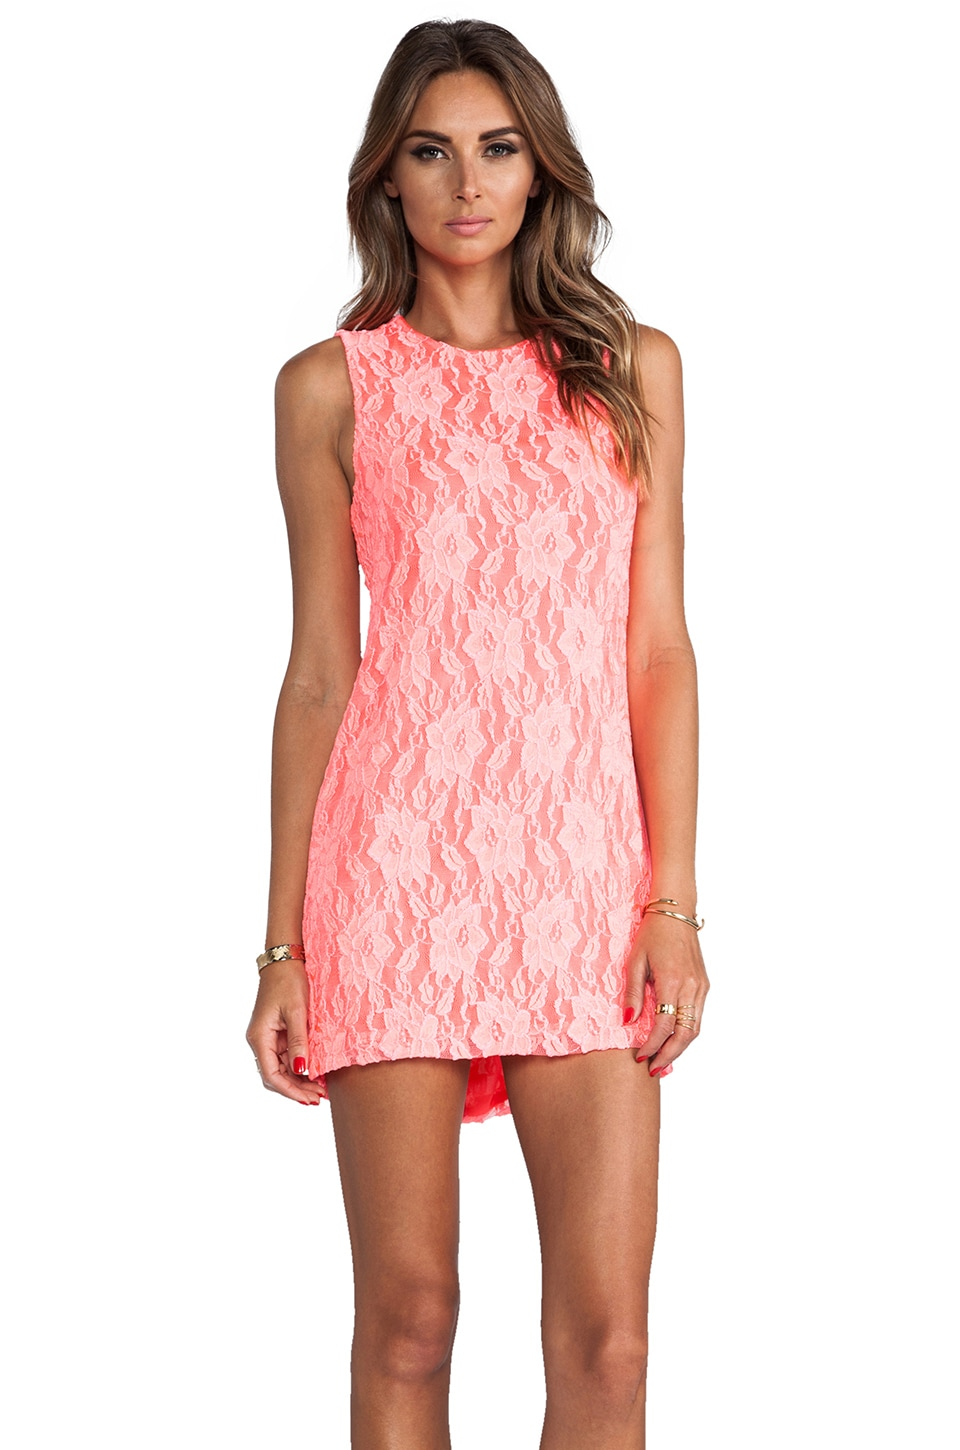 Naven Twiggy Dress in Neon Salmon Lace